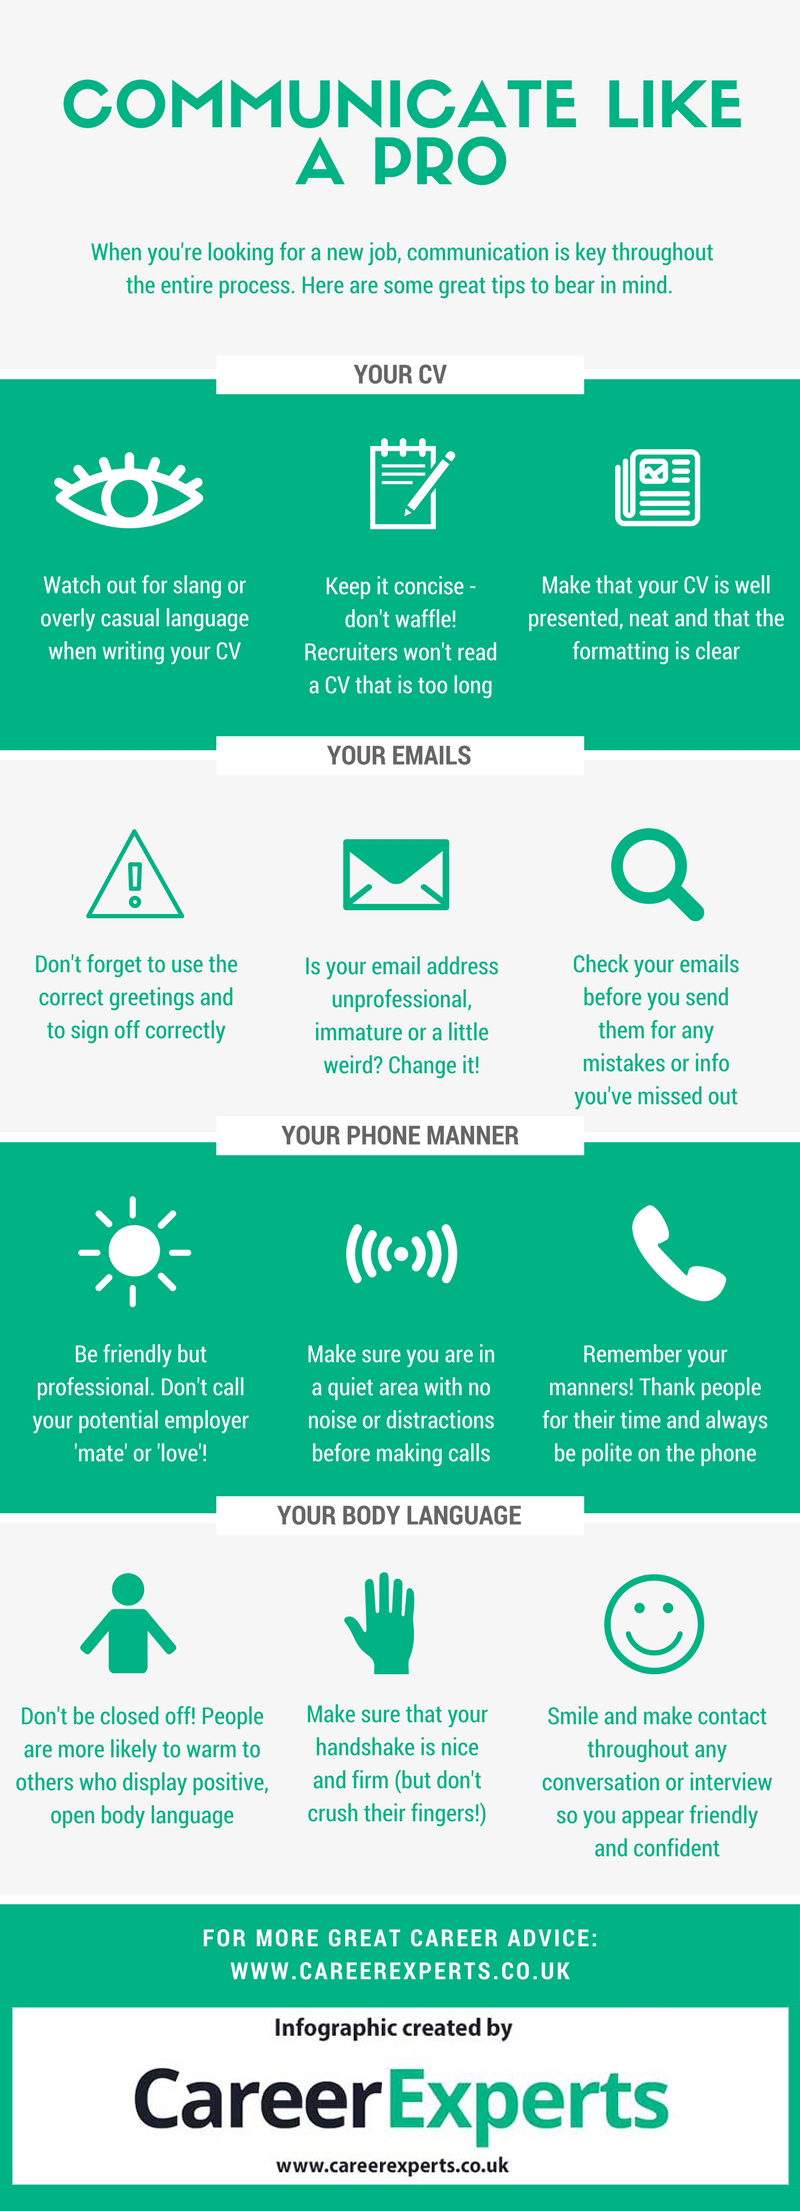 How to communicate like a pro infographic - job searching tips